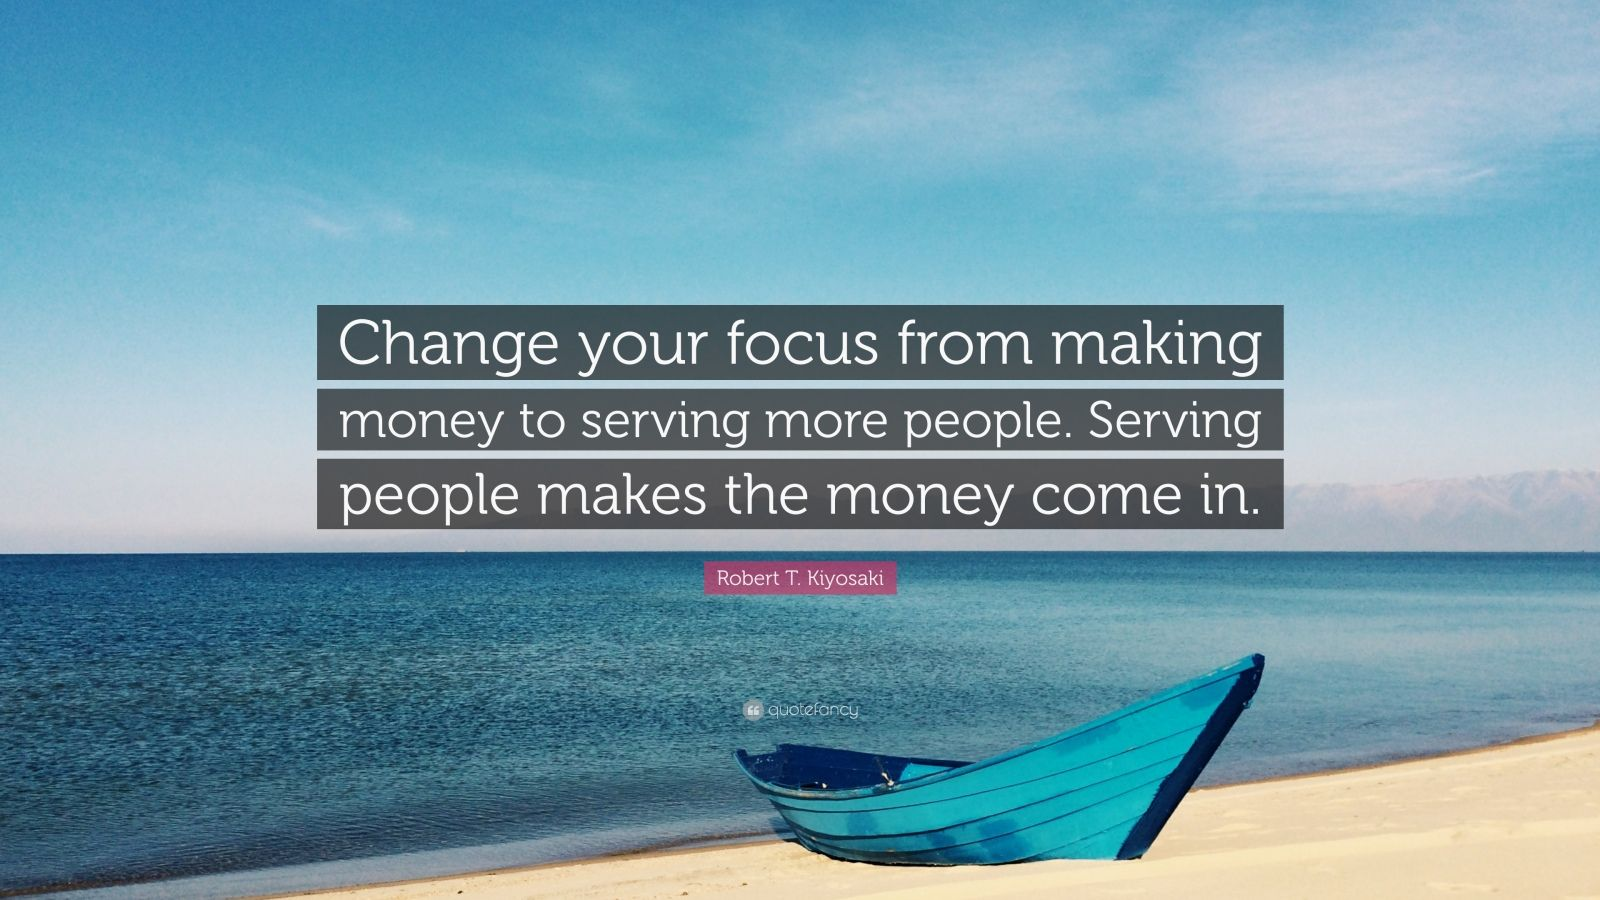 """Robert T. Kiyosaki Quote: """"Change your focus from making money to serving more people. Serving people makes the money come in."""""""